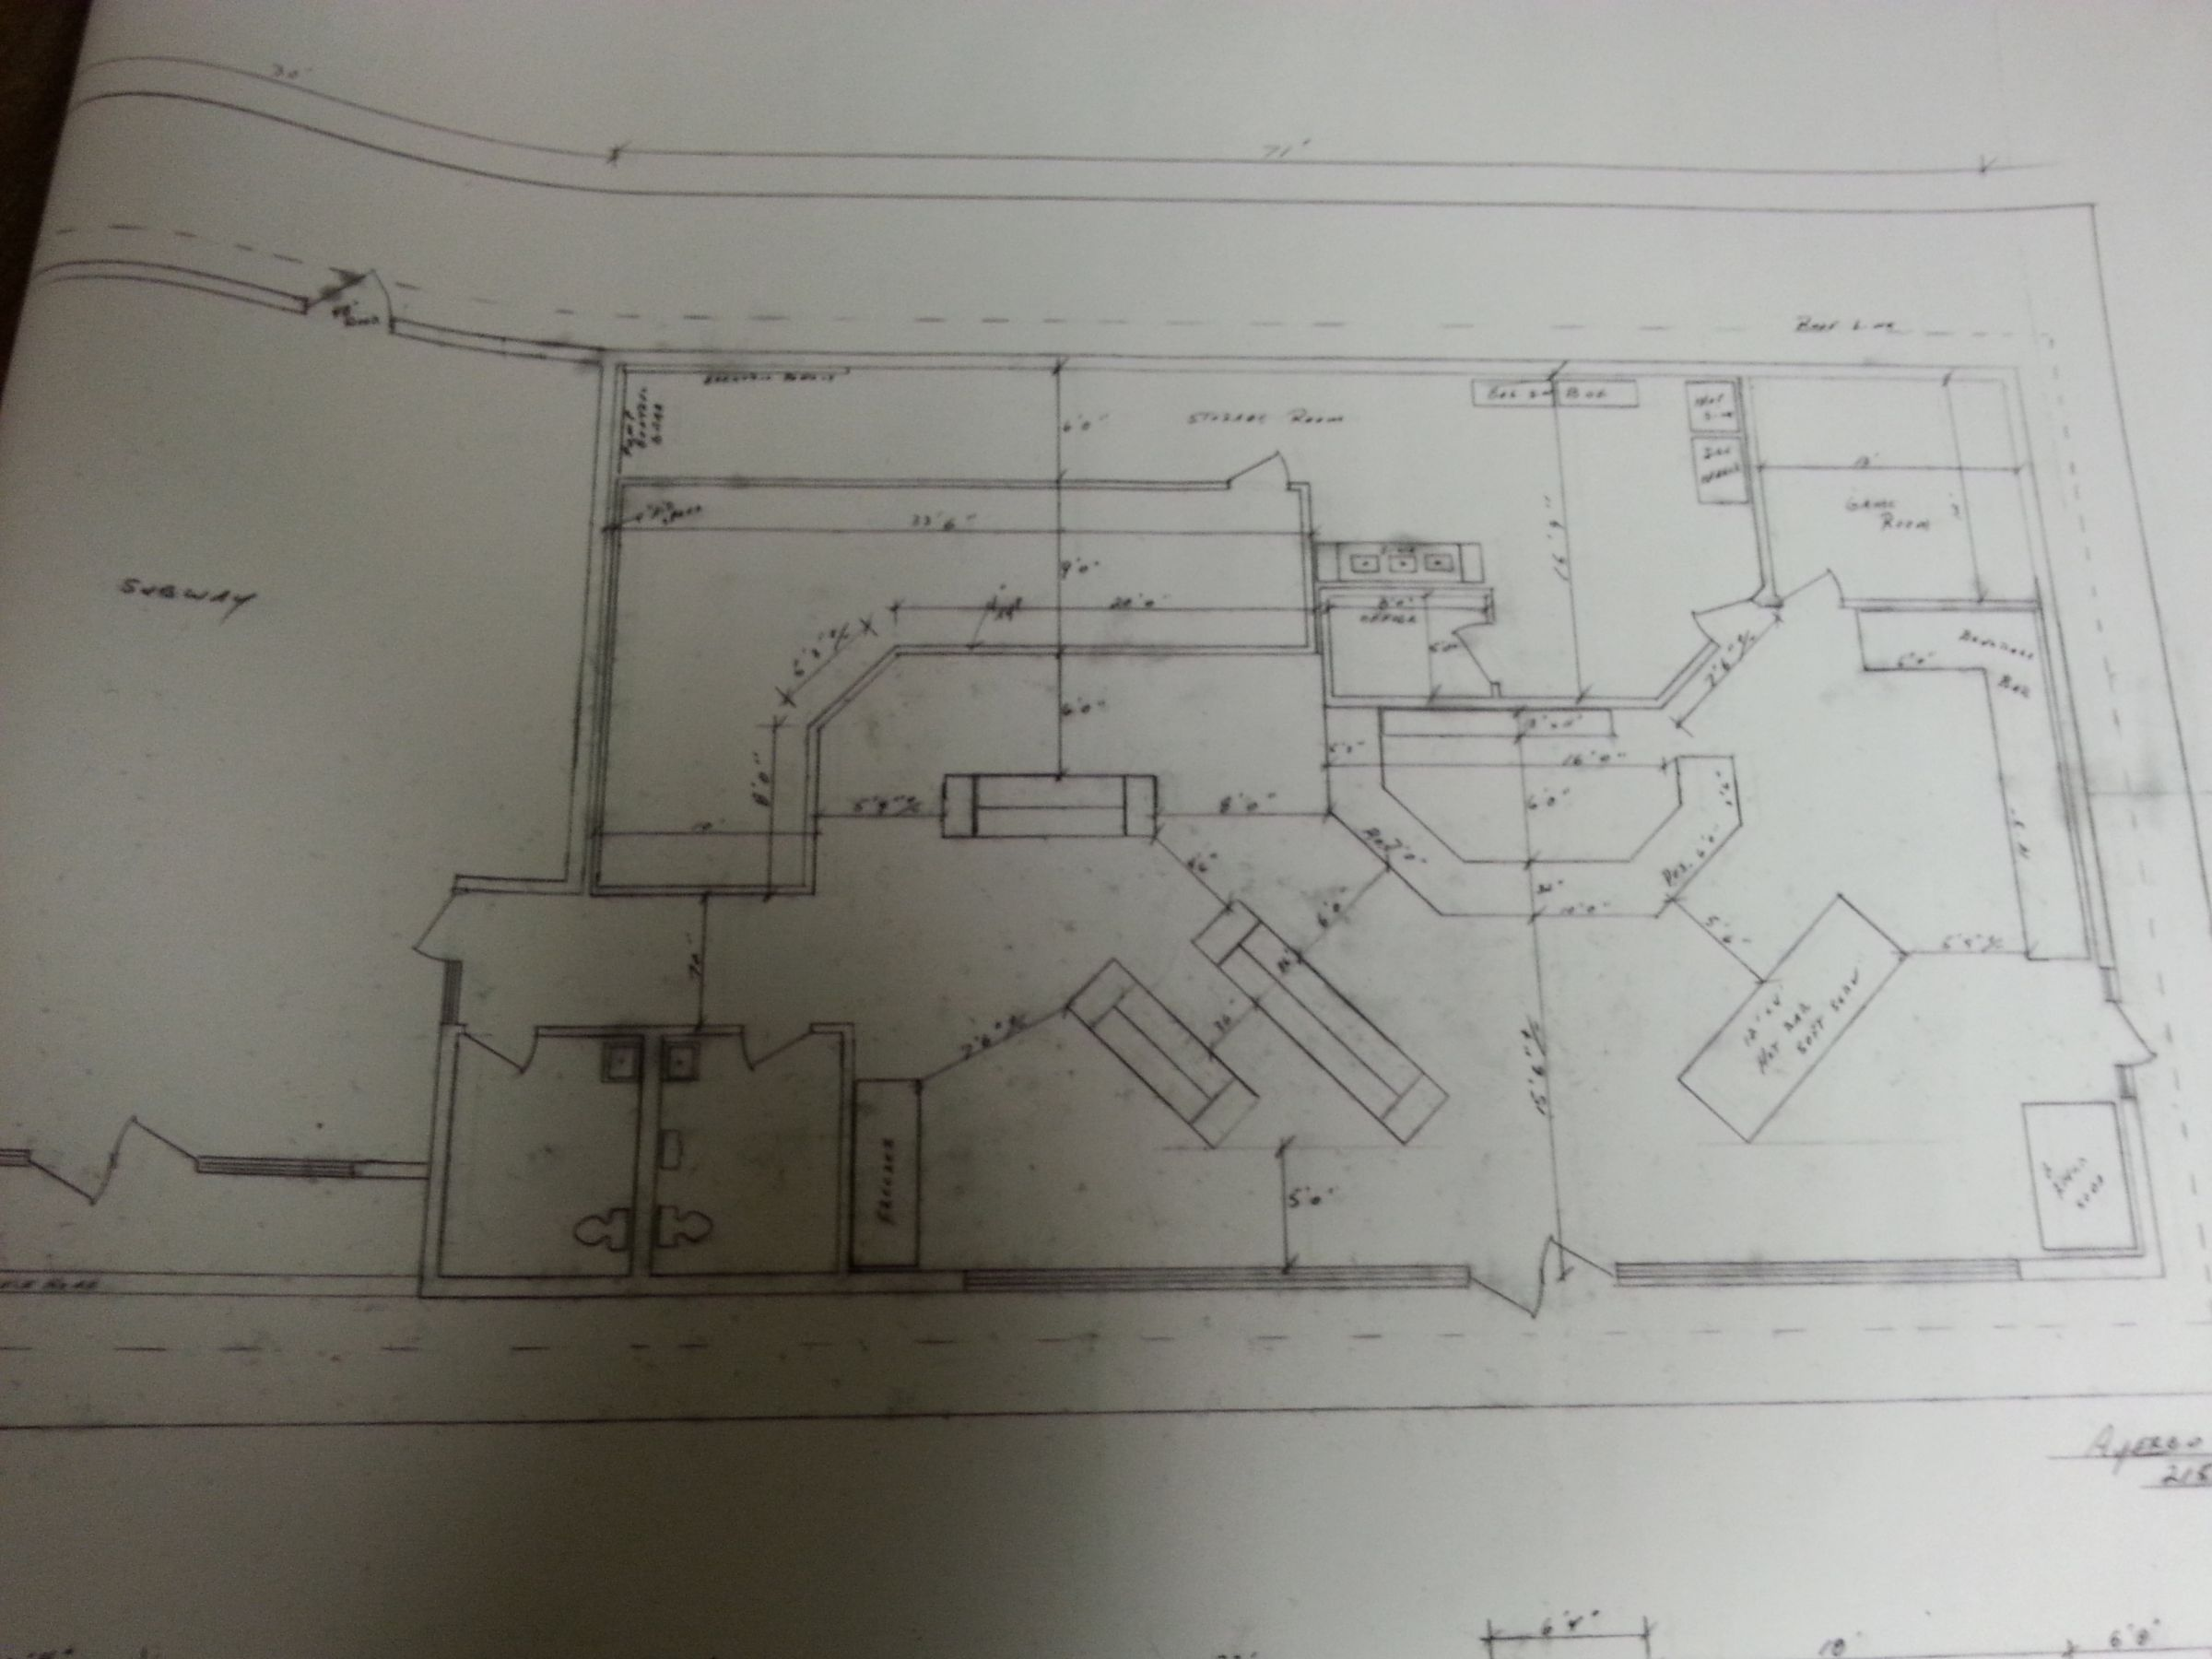 Local News Taylorville Daily Barnes Snow Plow Wiring Diagram Photos Of Prelim Drawings Outside And Inside